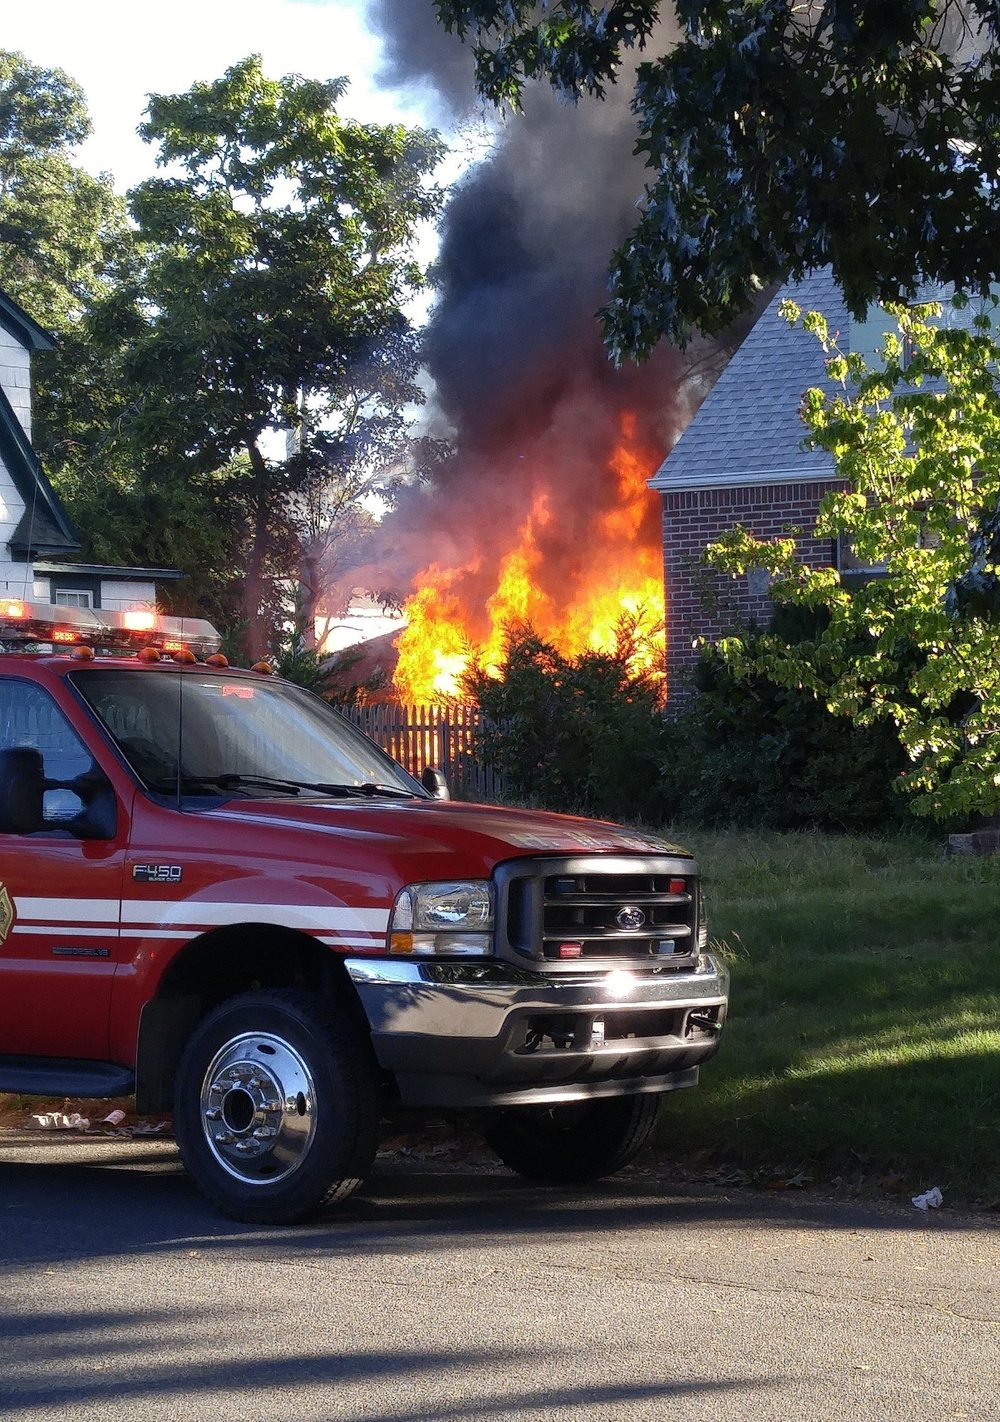 Photo/Huntington Manor Fire Department A garage at a Fourth Avenue home in Huntington Station is engulfed by flames early this morning. Fire officials said there were no reported injuries and that they were able to contain the blaze.